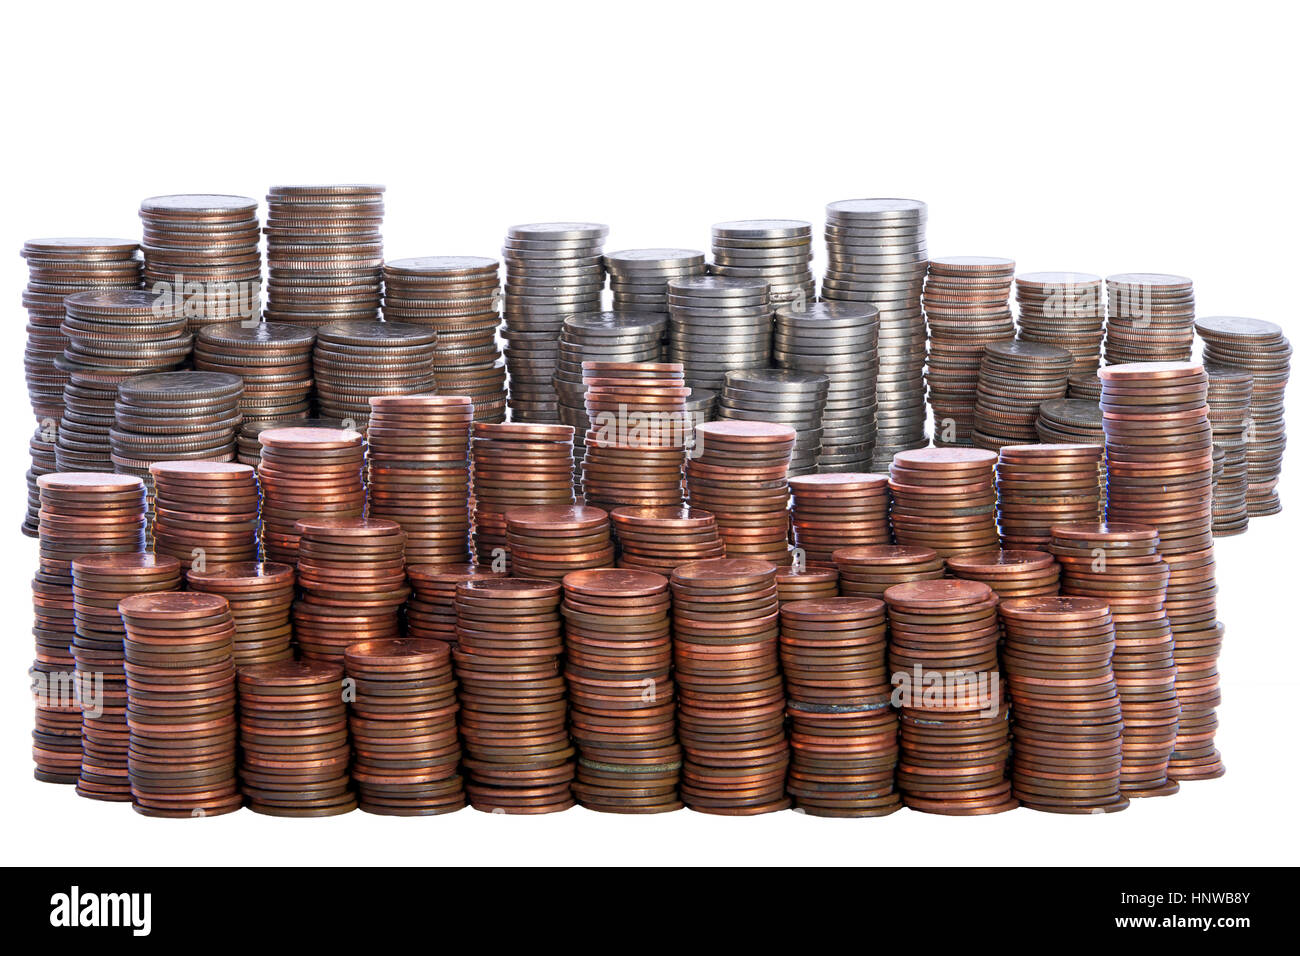 Money Stacks Of Coins Quarters Nickels Dimes And